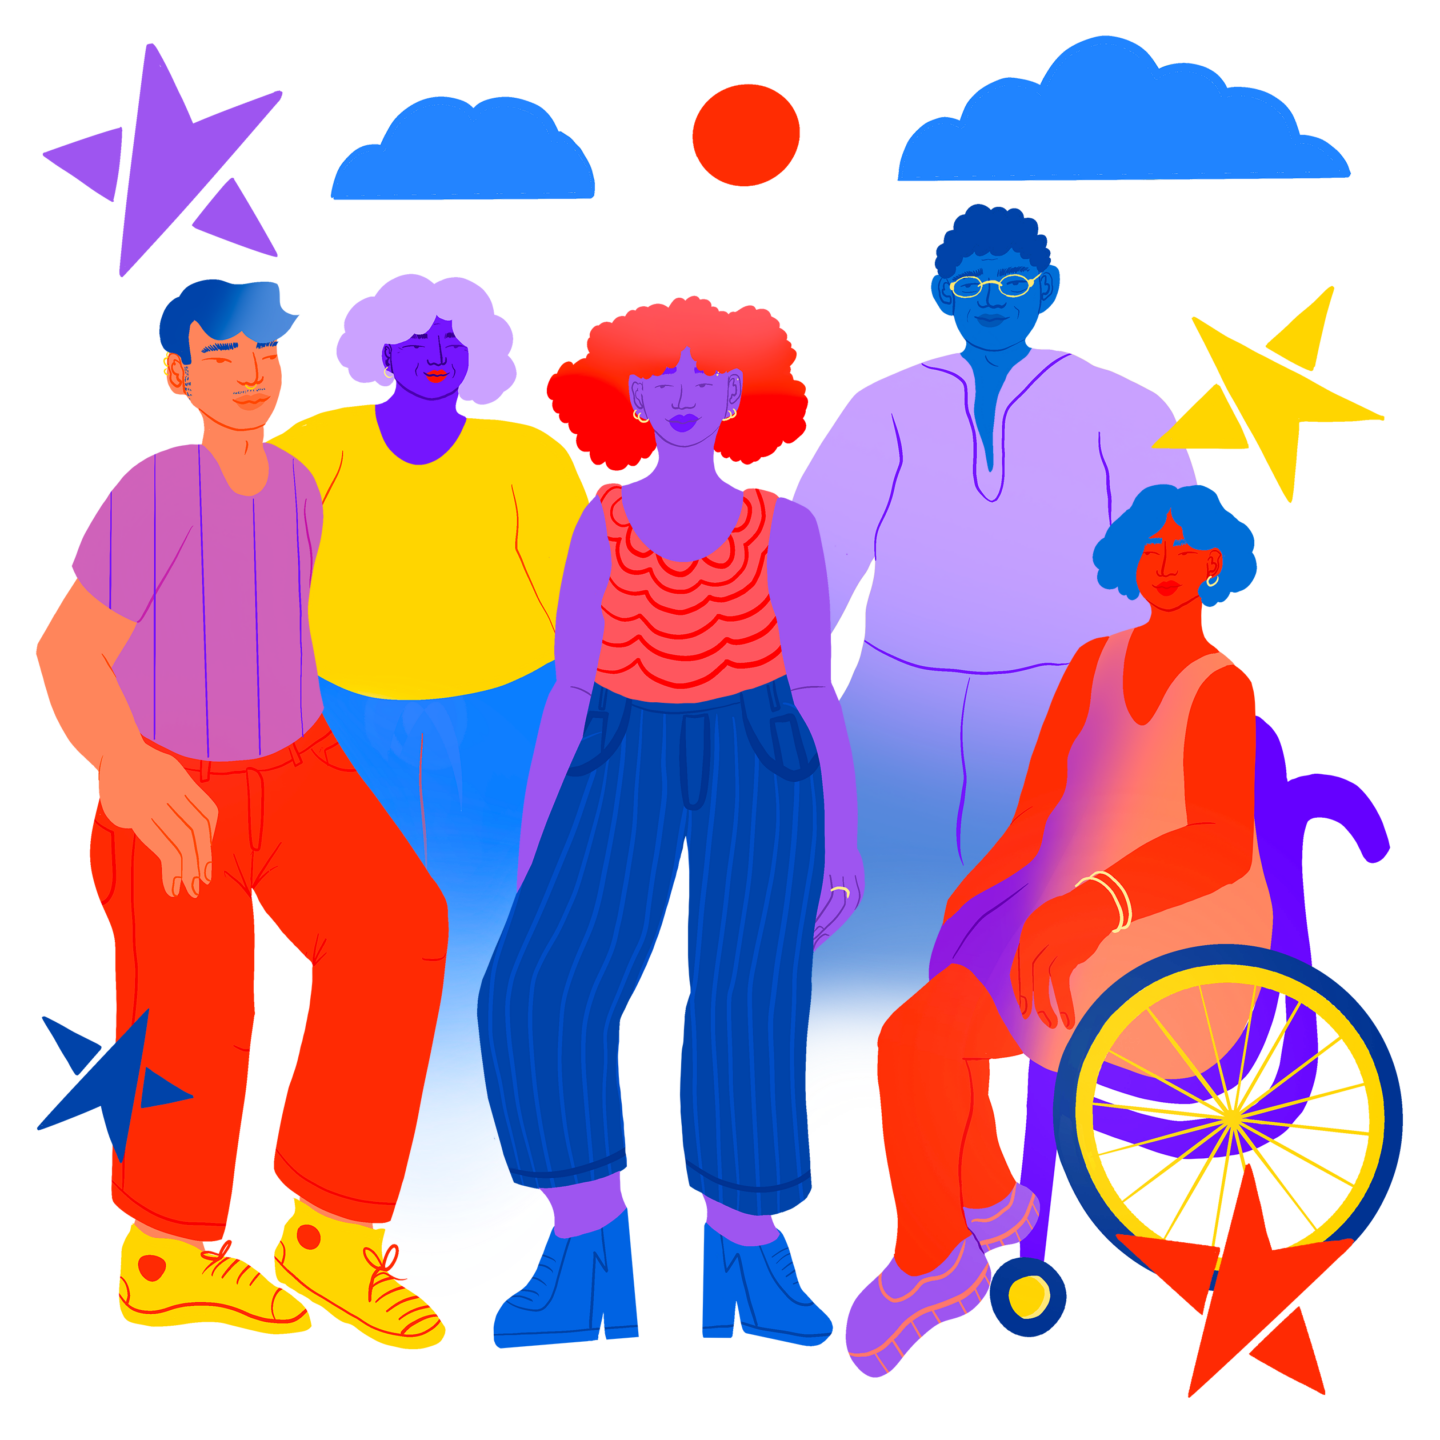 Group of LGBTQ young people surrounded by compass stars and clouds